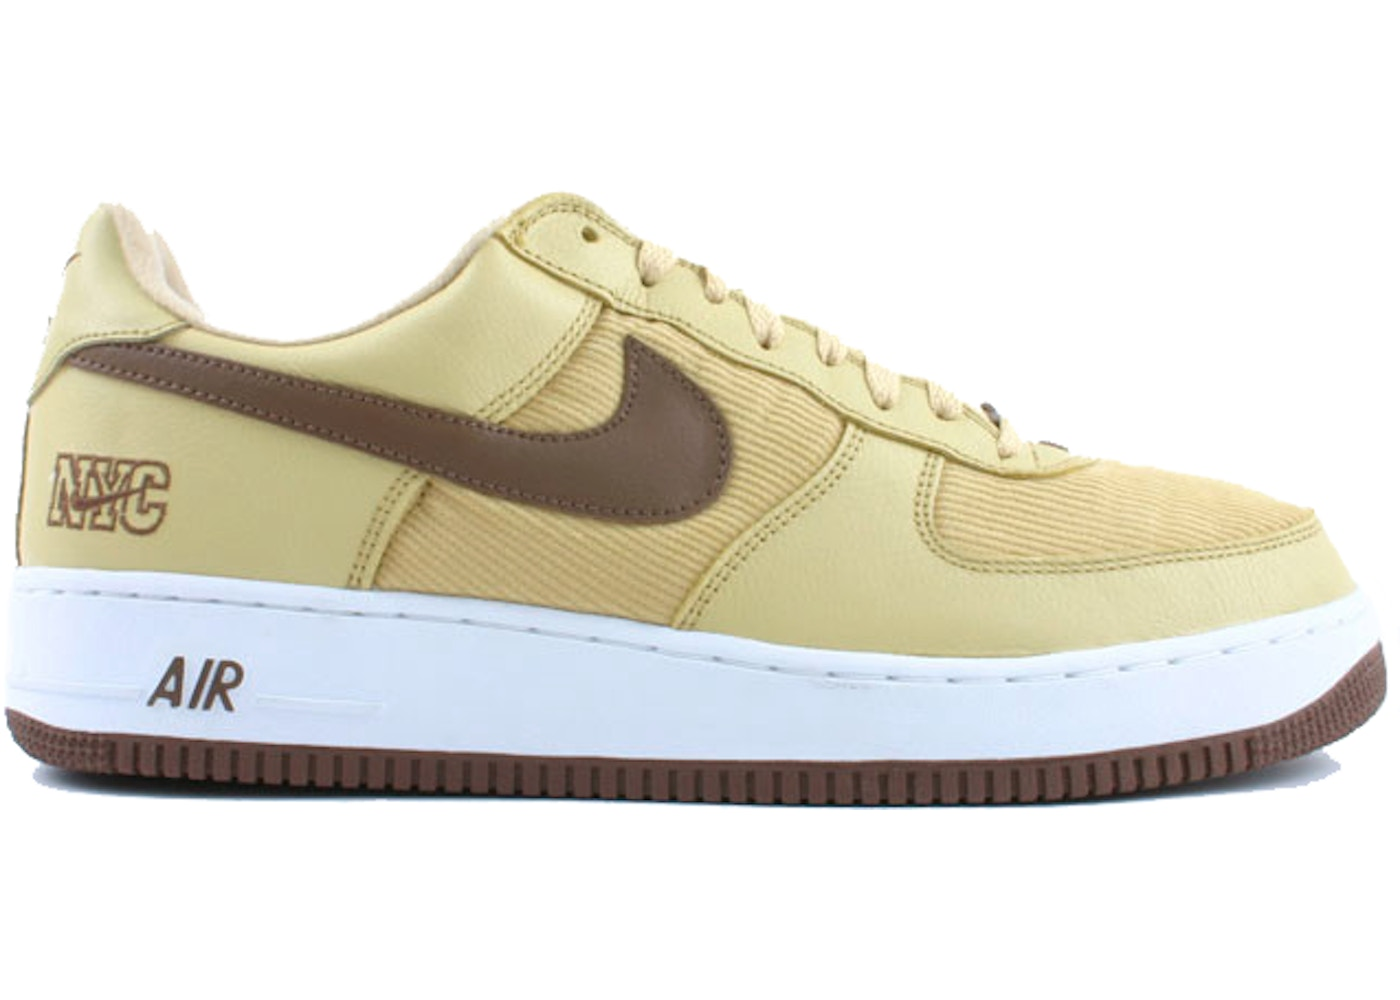 meet 5b9a7 6b88d Air Force 1 Low NYC Corduroy Gold Dust - 306509-721